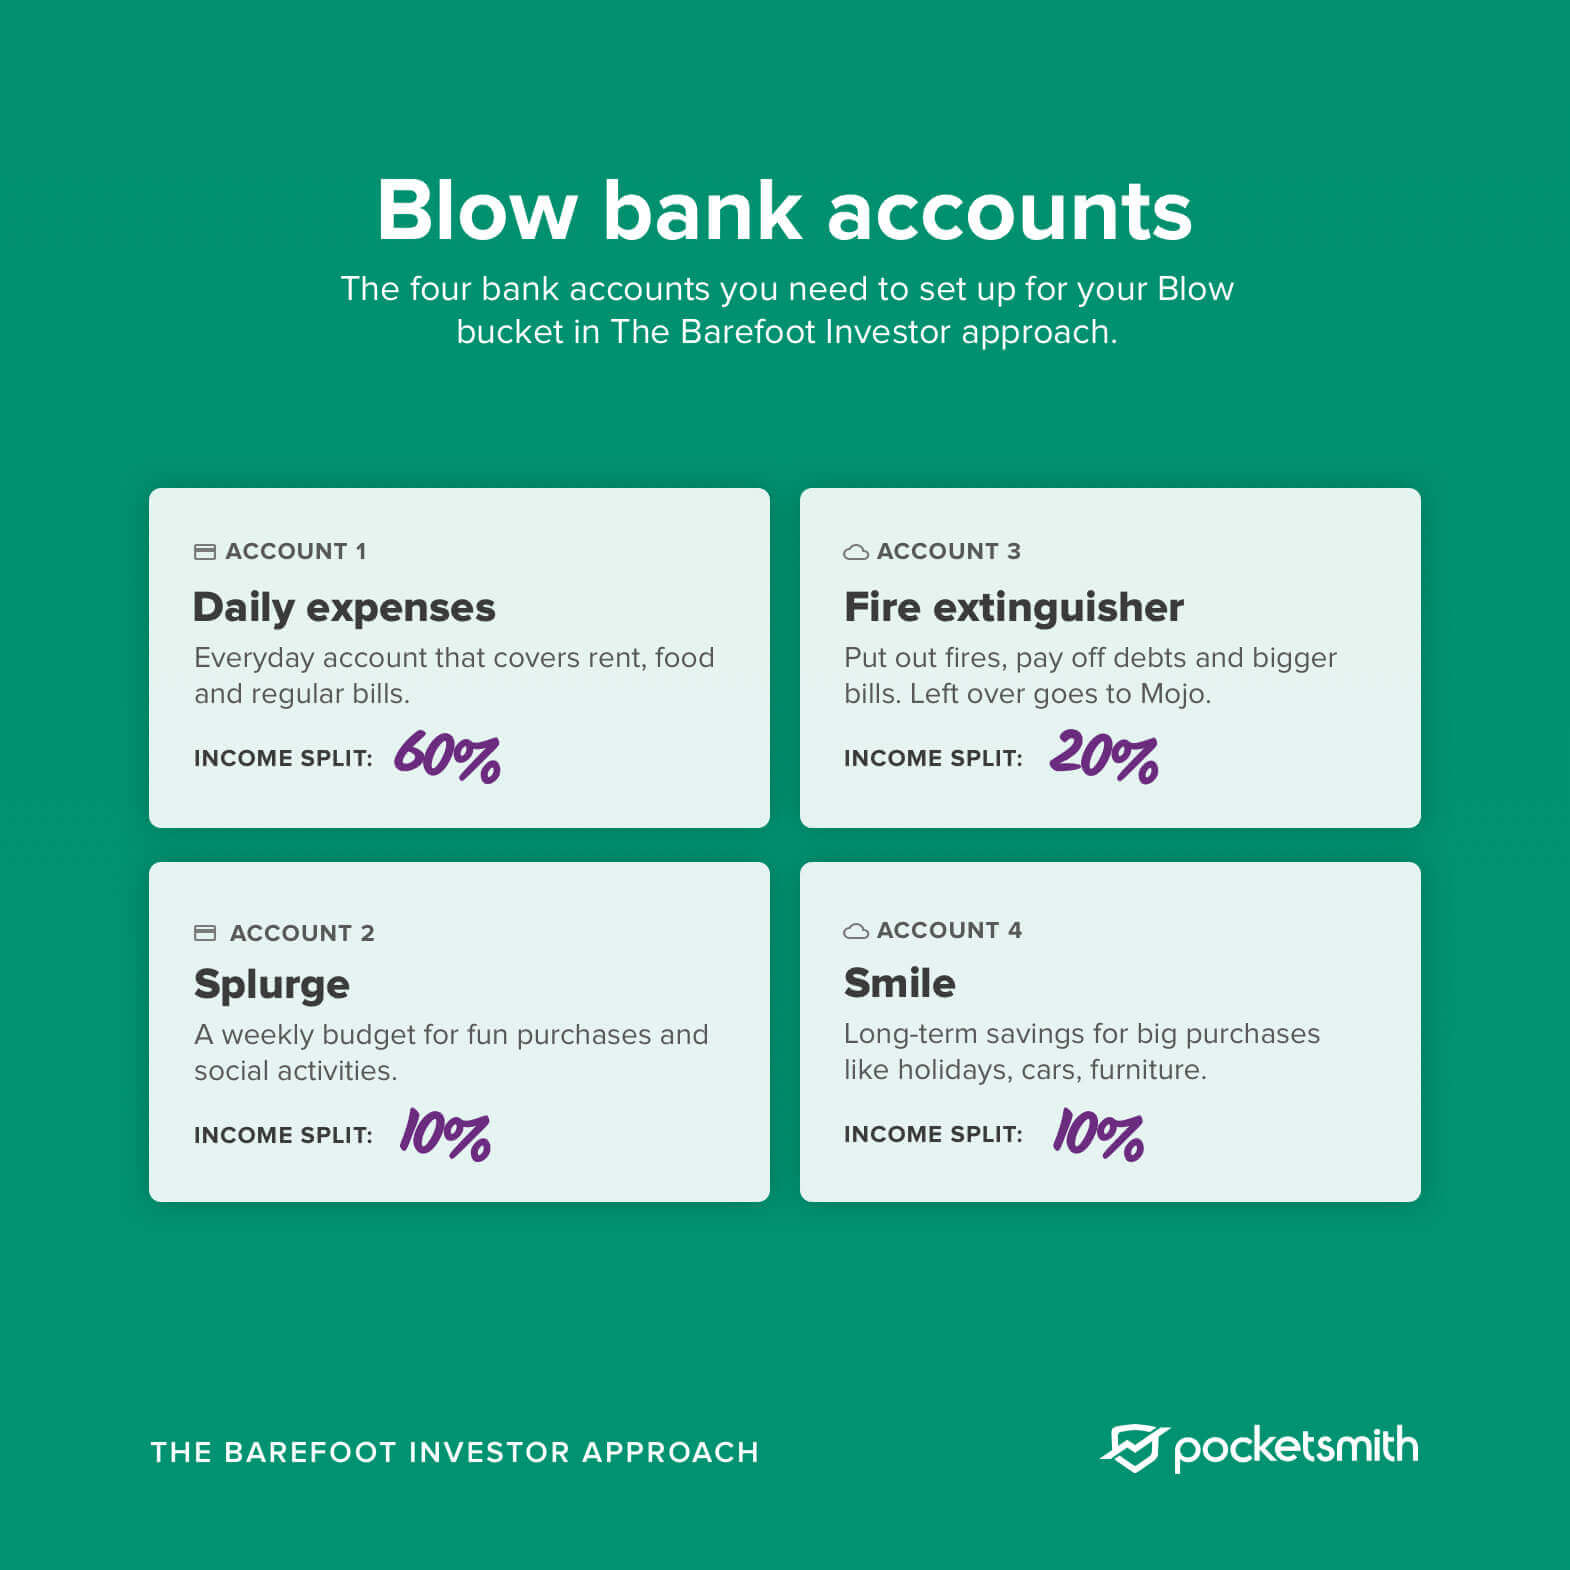 A diagram showing the four bank accounts that need to be set up under the Blow bucket for the Barefoot Investor approach